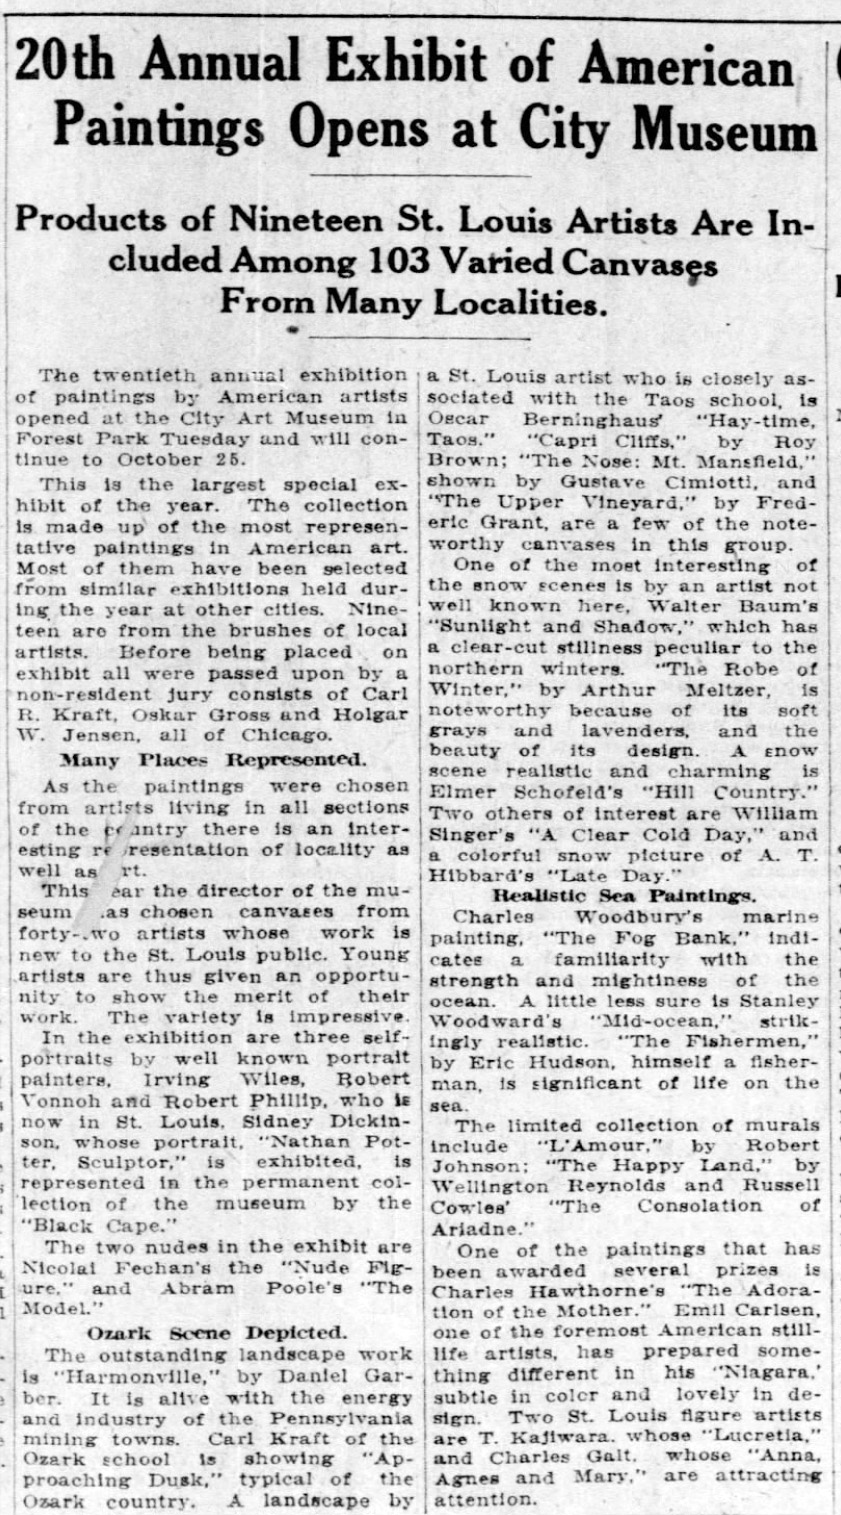 "The St. Louis Star and Times, St. Louis, MO, ""20th Annual Exhibit of American Paintings Opens at City Museum"", Saturday, September 19, 1925, Main Edition, page 3, not illustrated"